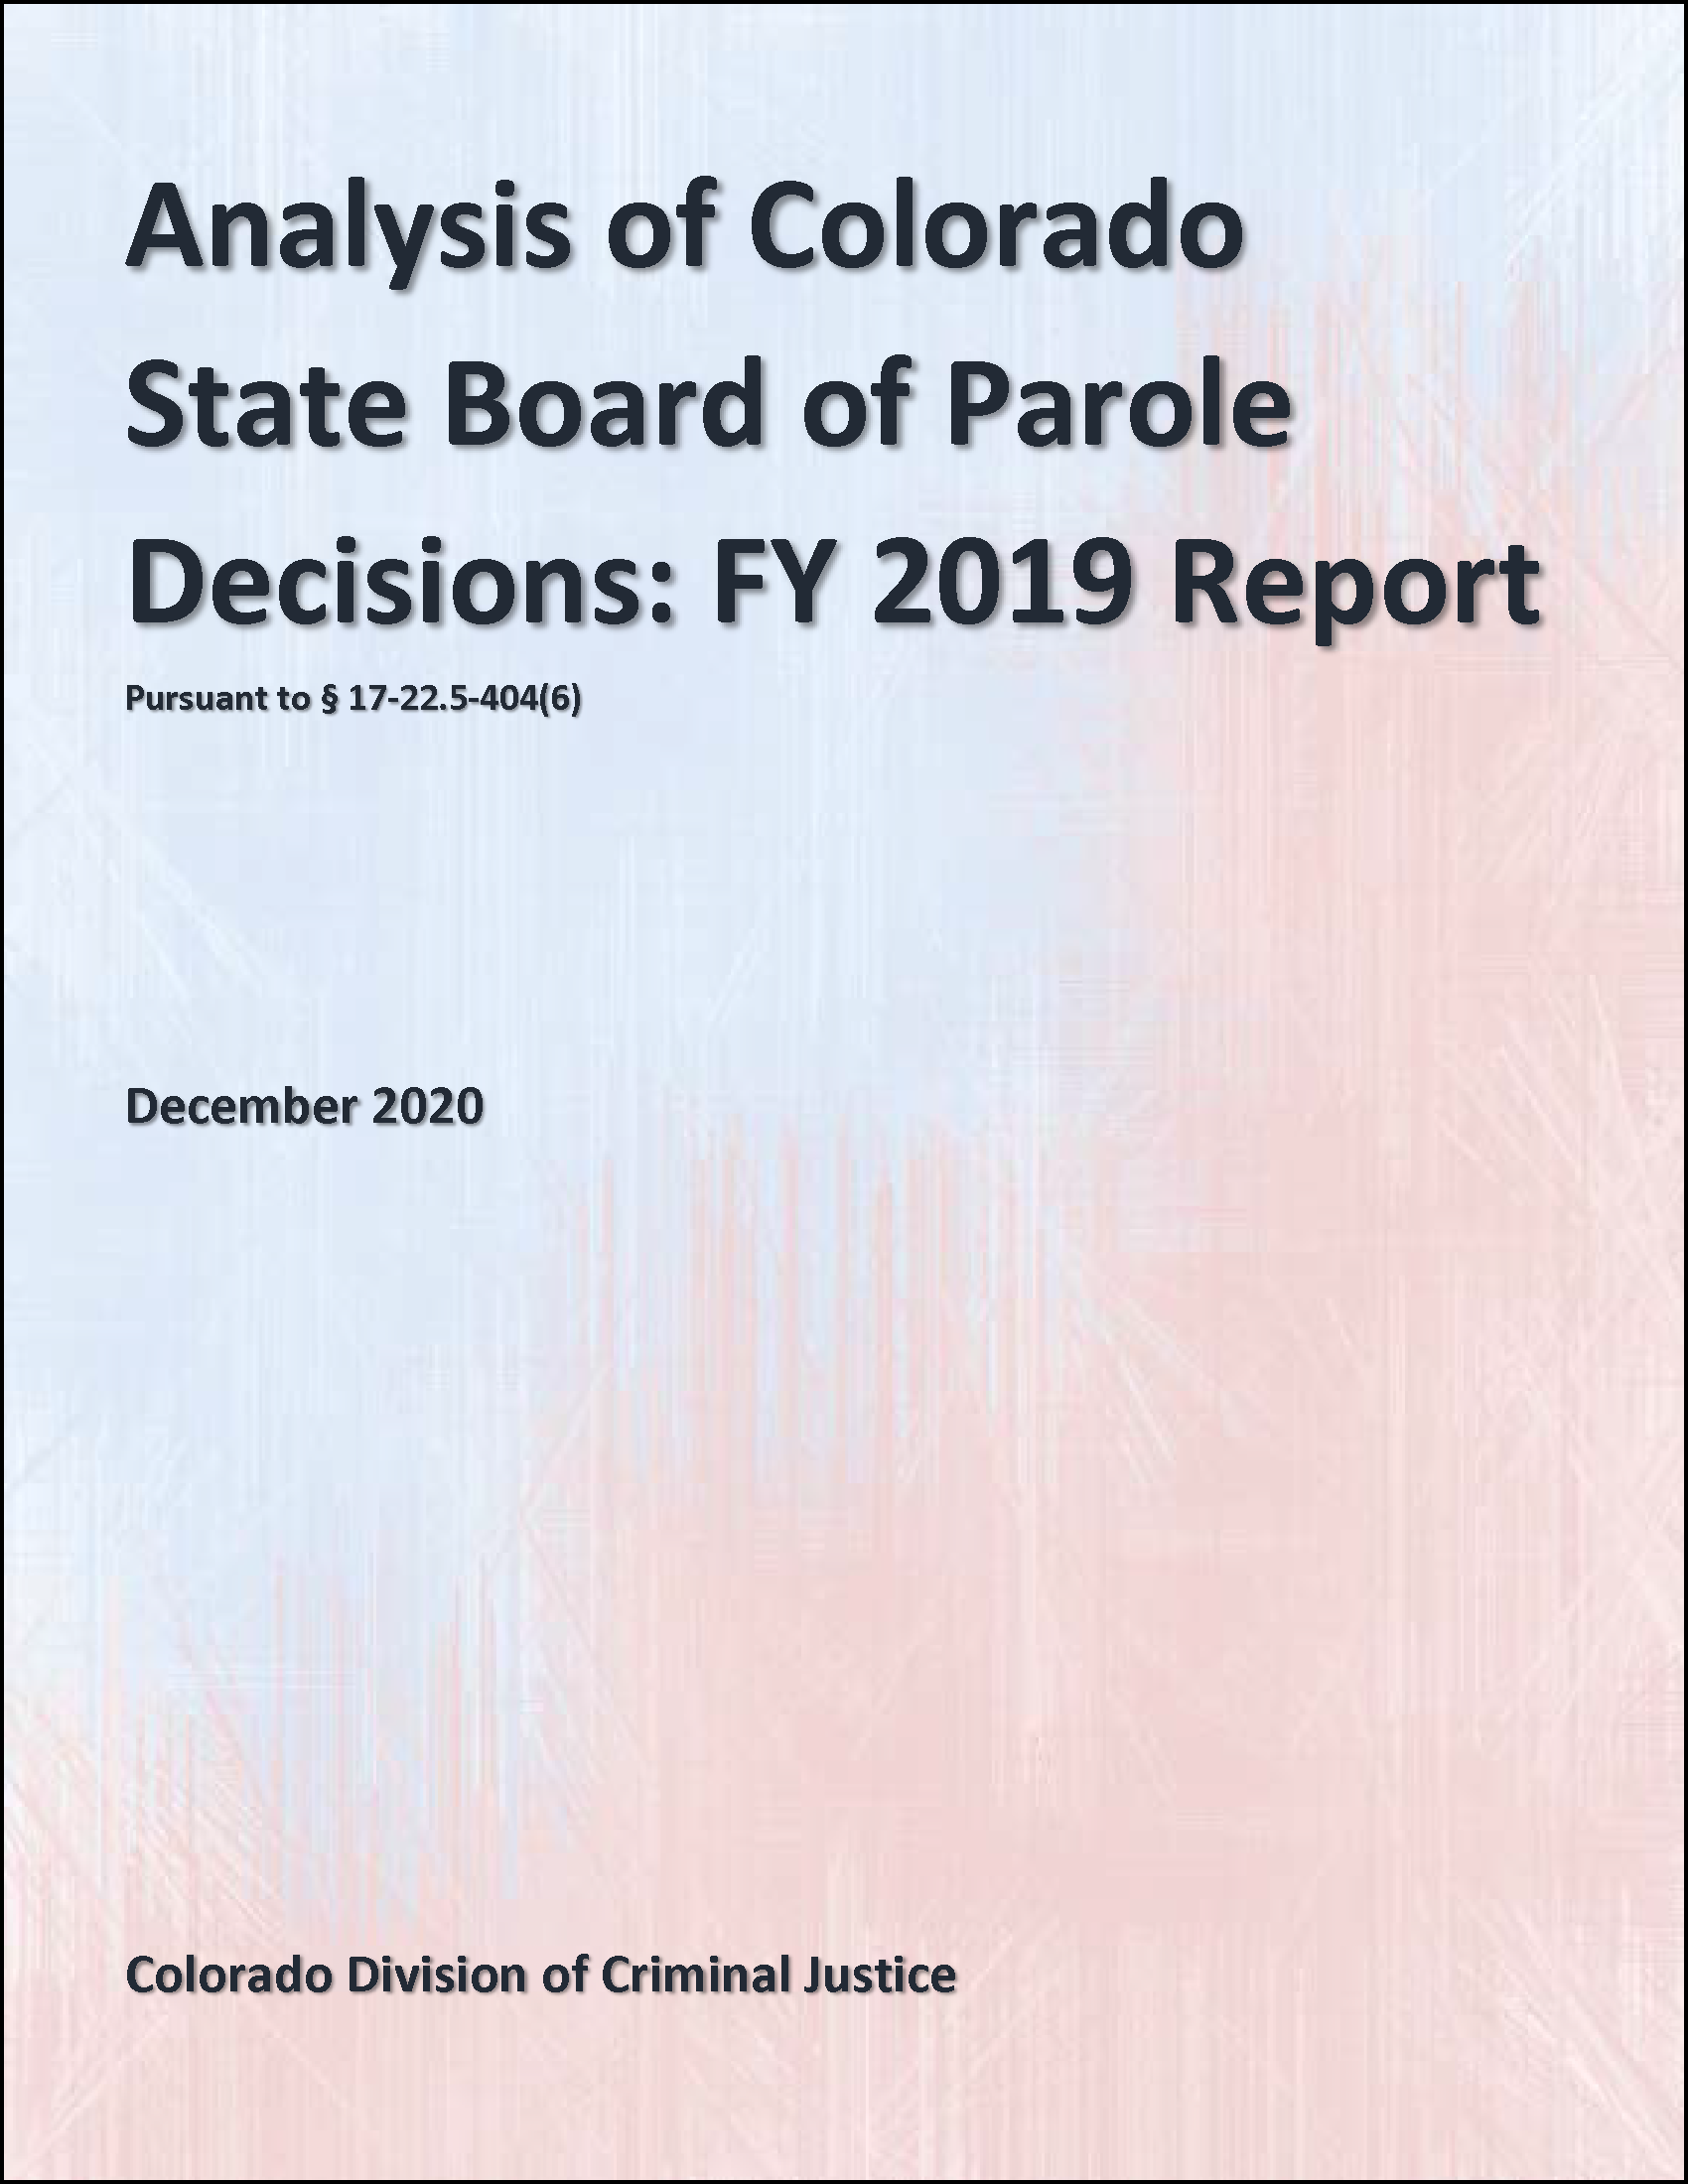 Analysis of Colorado State Board of Parole Decisions: FY 2019 Report (December 2020)